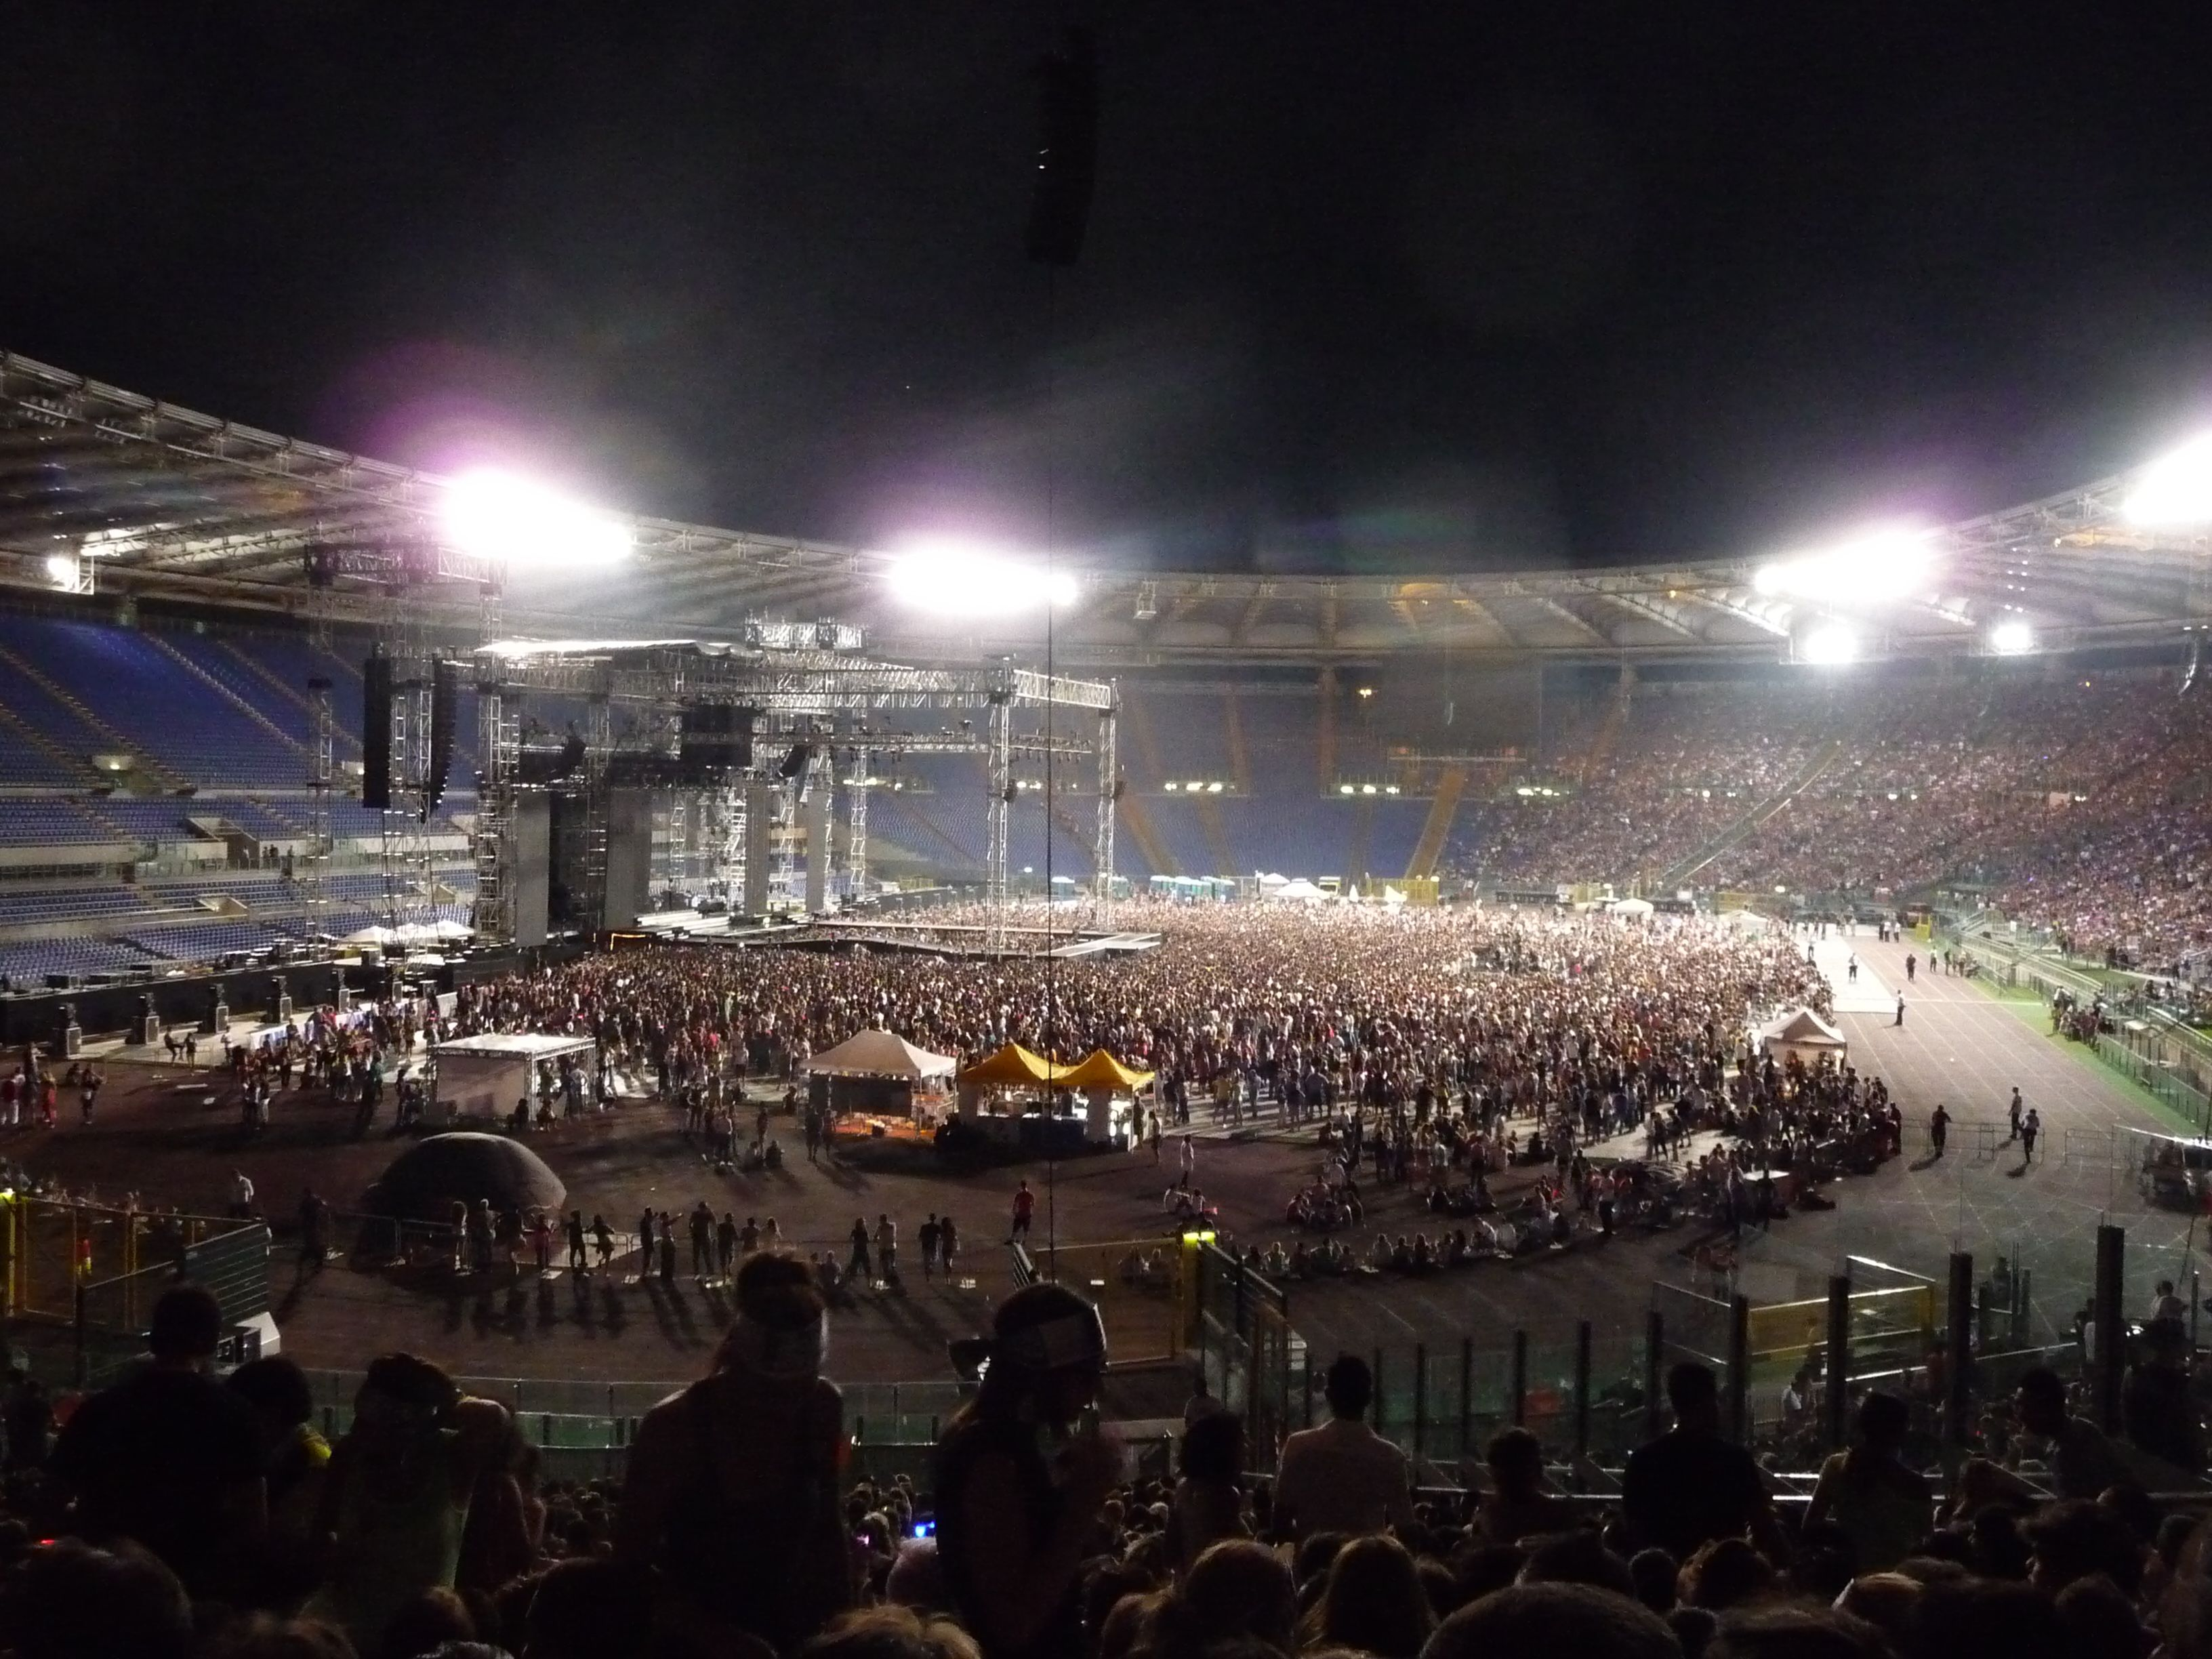 Stadio Olimpico set up for a music concert